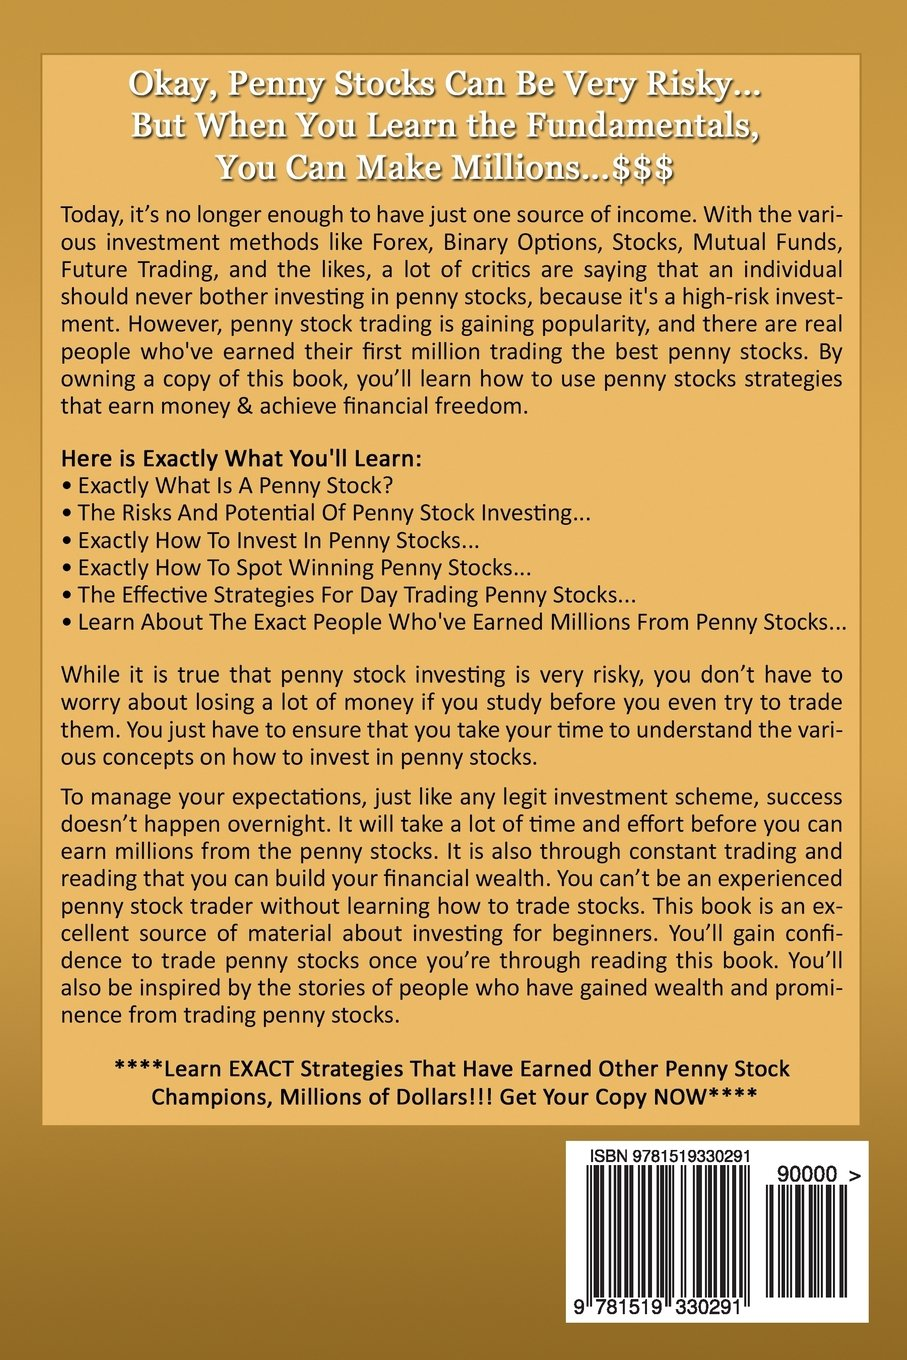 PENNY STOCKS: How to Find Penny Stocks That Can Make MILLIONS